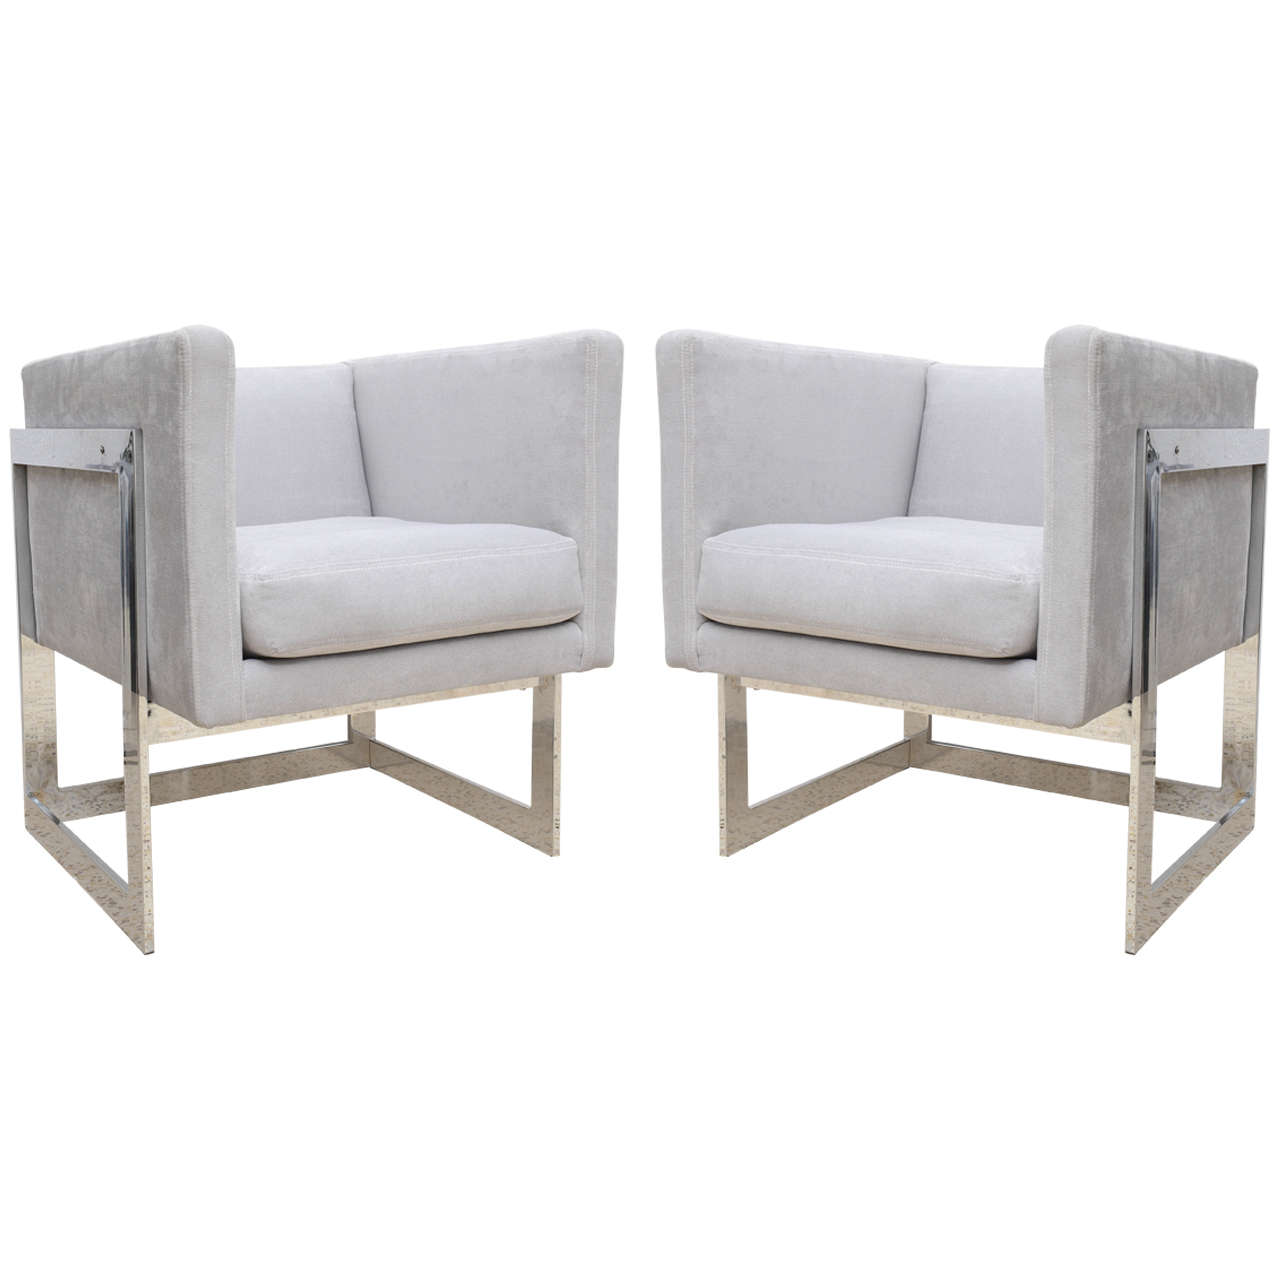 Milo baughman flat bar cube chair chrome with grey fabric at 1stdibs - Vintage lyon lounge ...